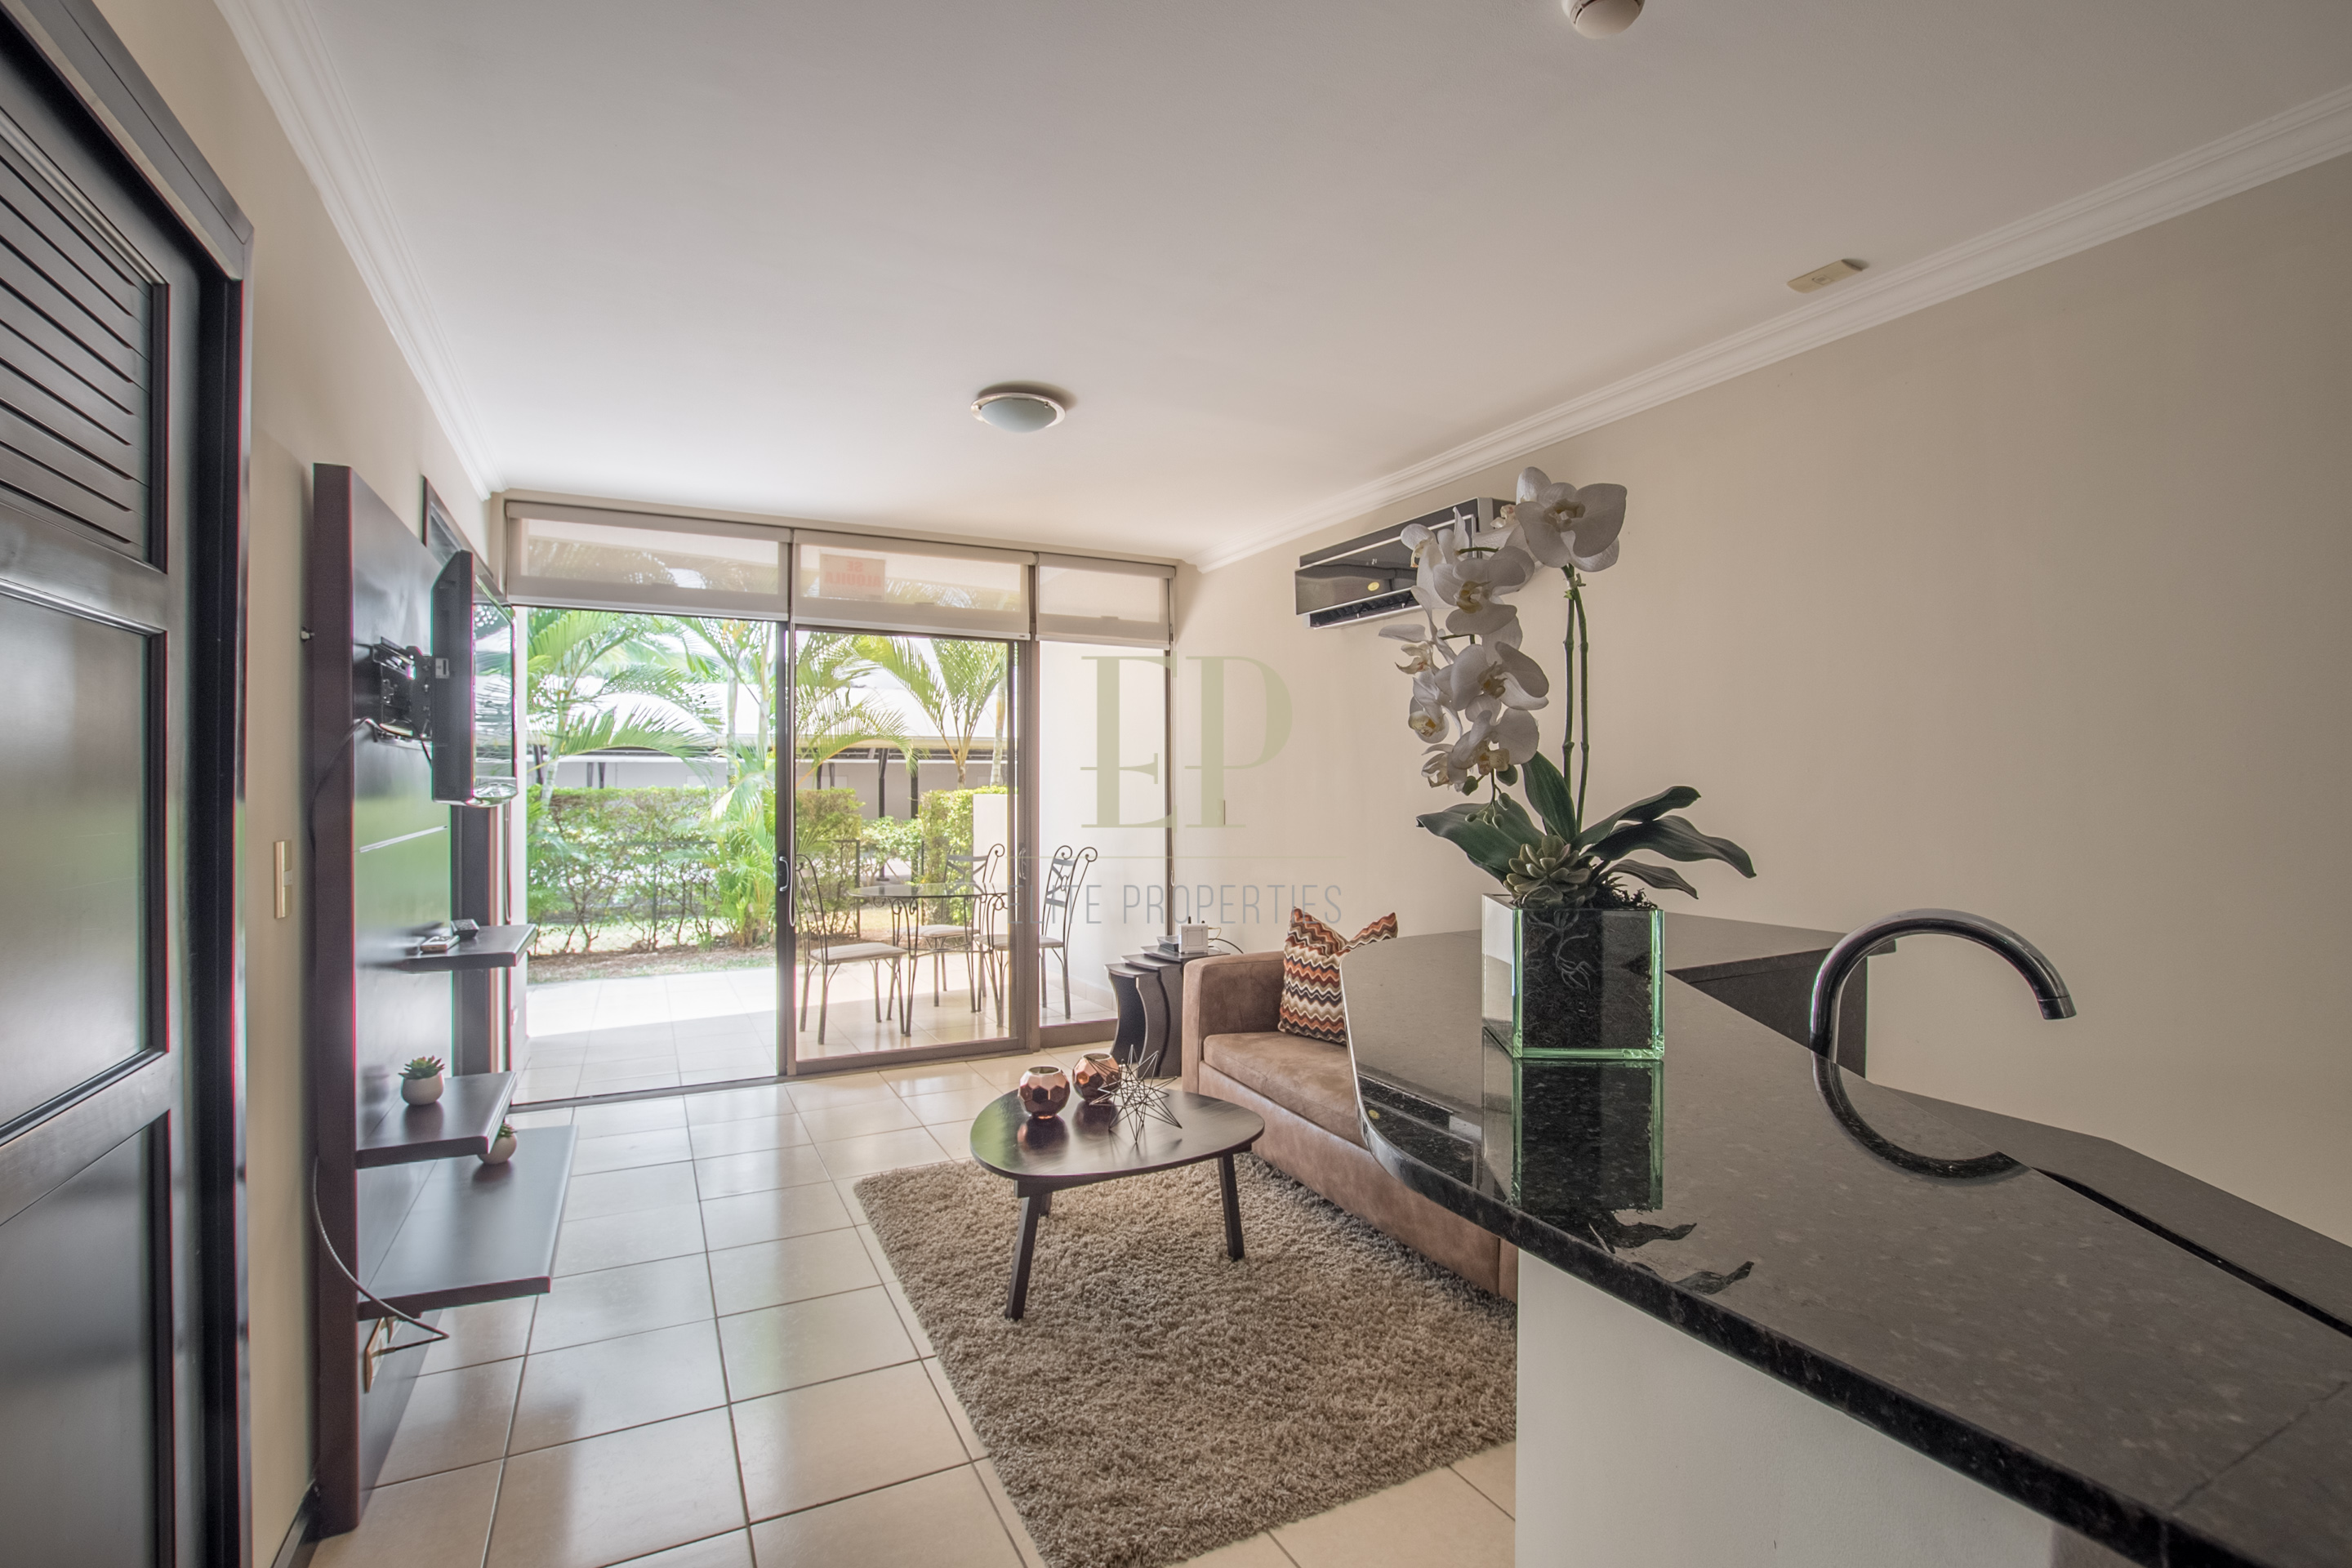 First floor apartment with patio, pool, tennis and more